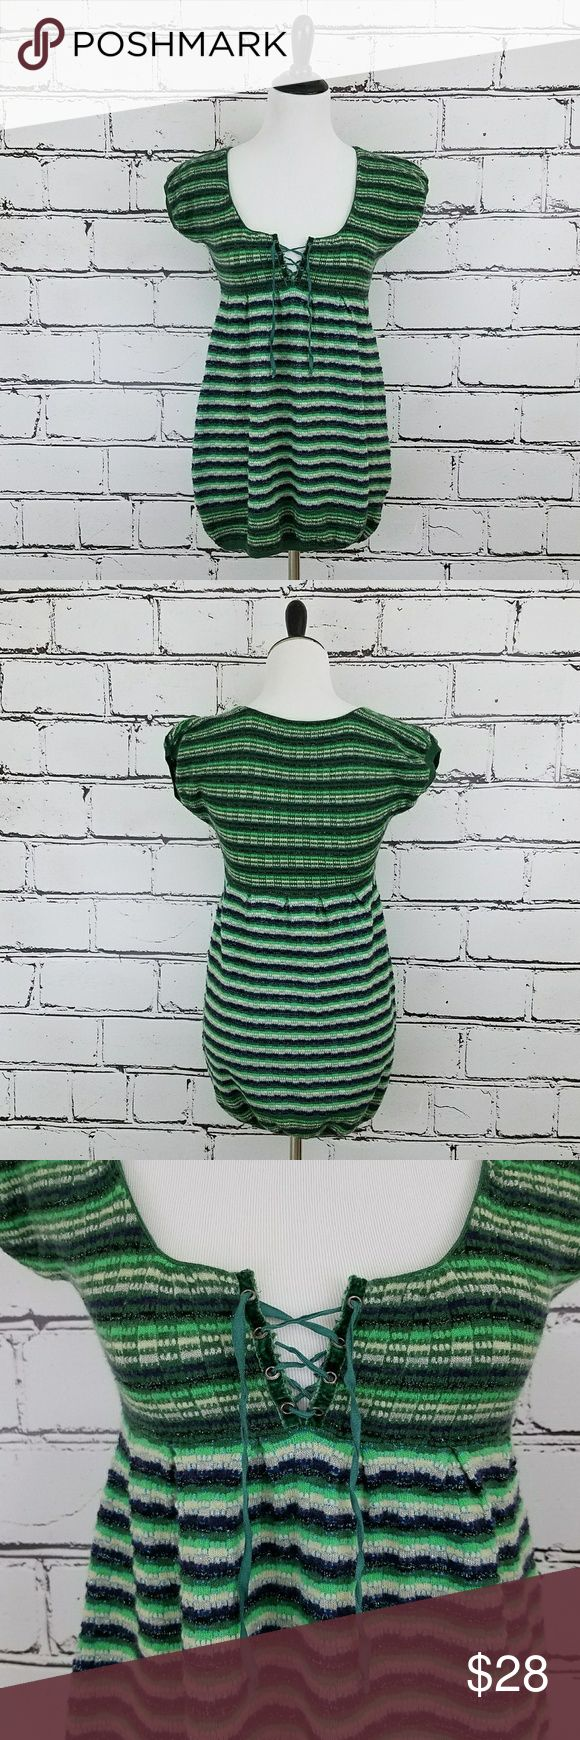 Free People Lace Front Top! Green, gray and sparkly silver striped short sleeved top. Sweater like material. Stretchy and soft. Lace front neckline. Length is about 28 inches and armpit to armpit is about 16 inches. Great condition! Free People Tops Tees - Short Sleeve